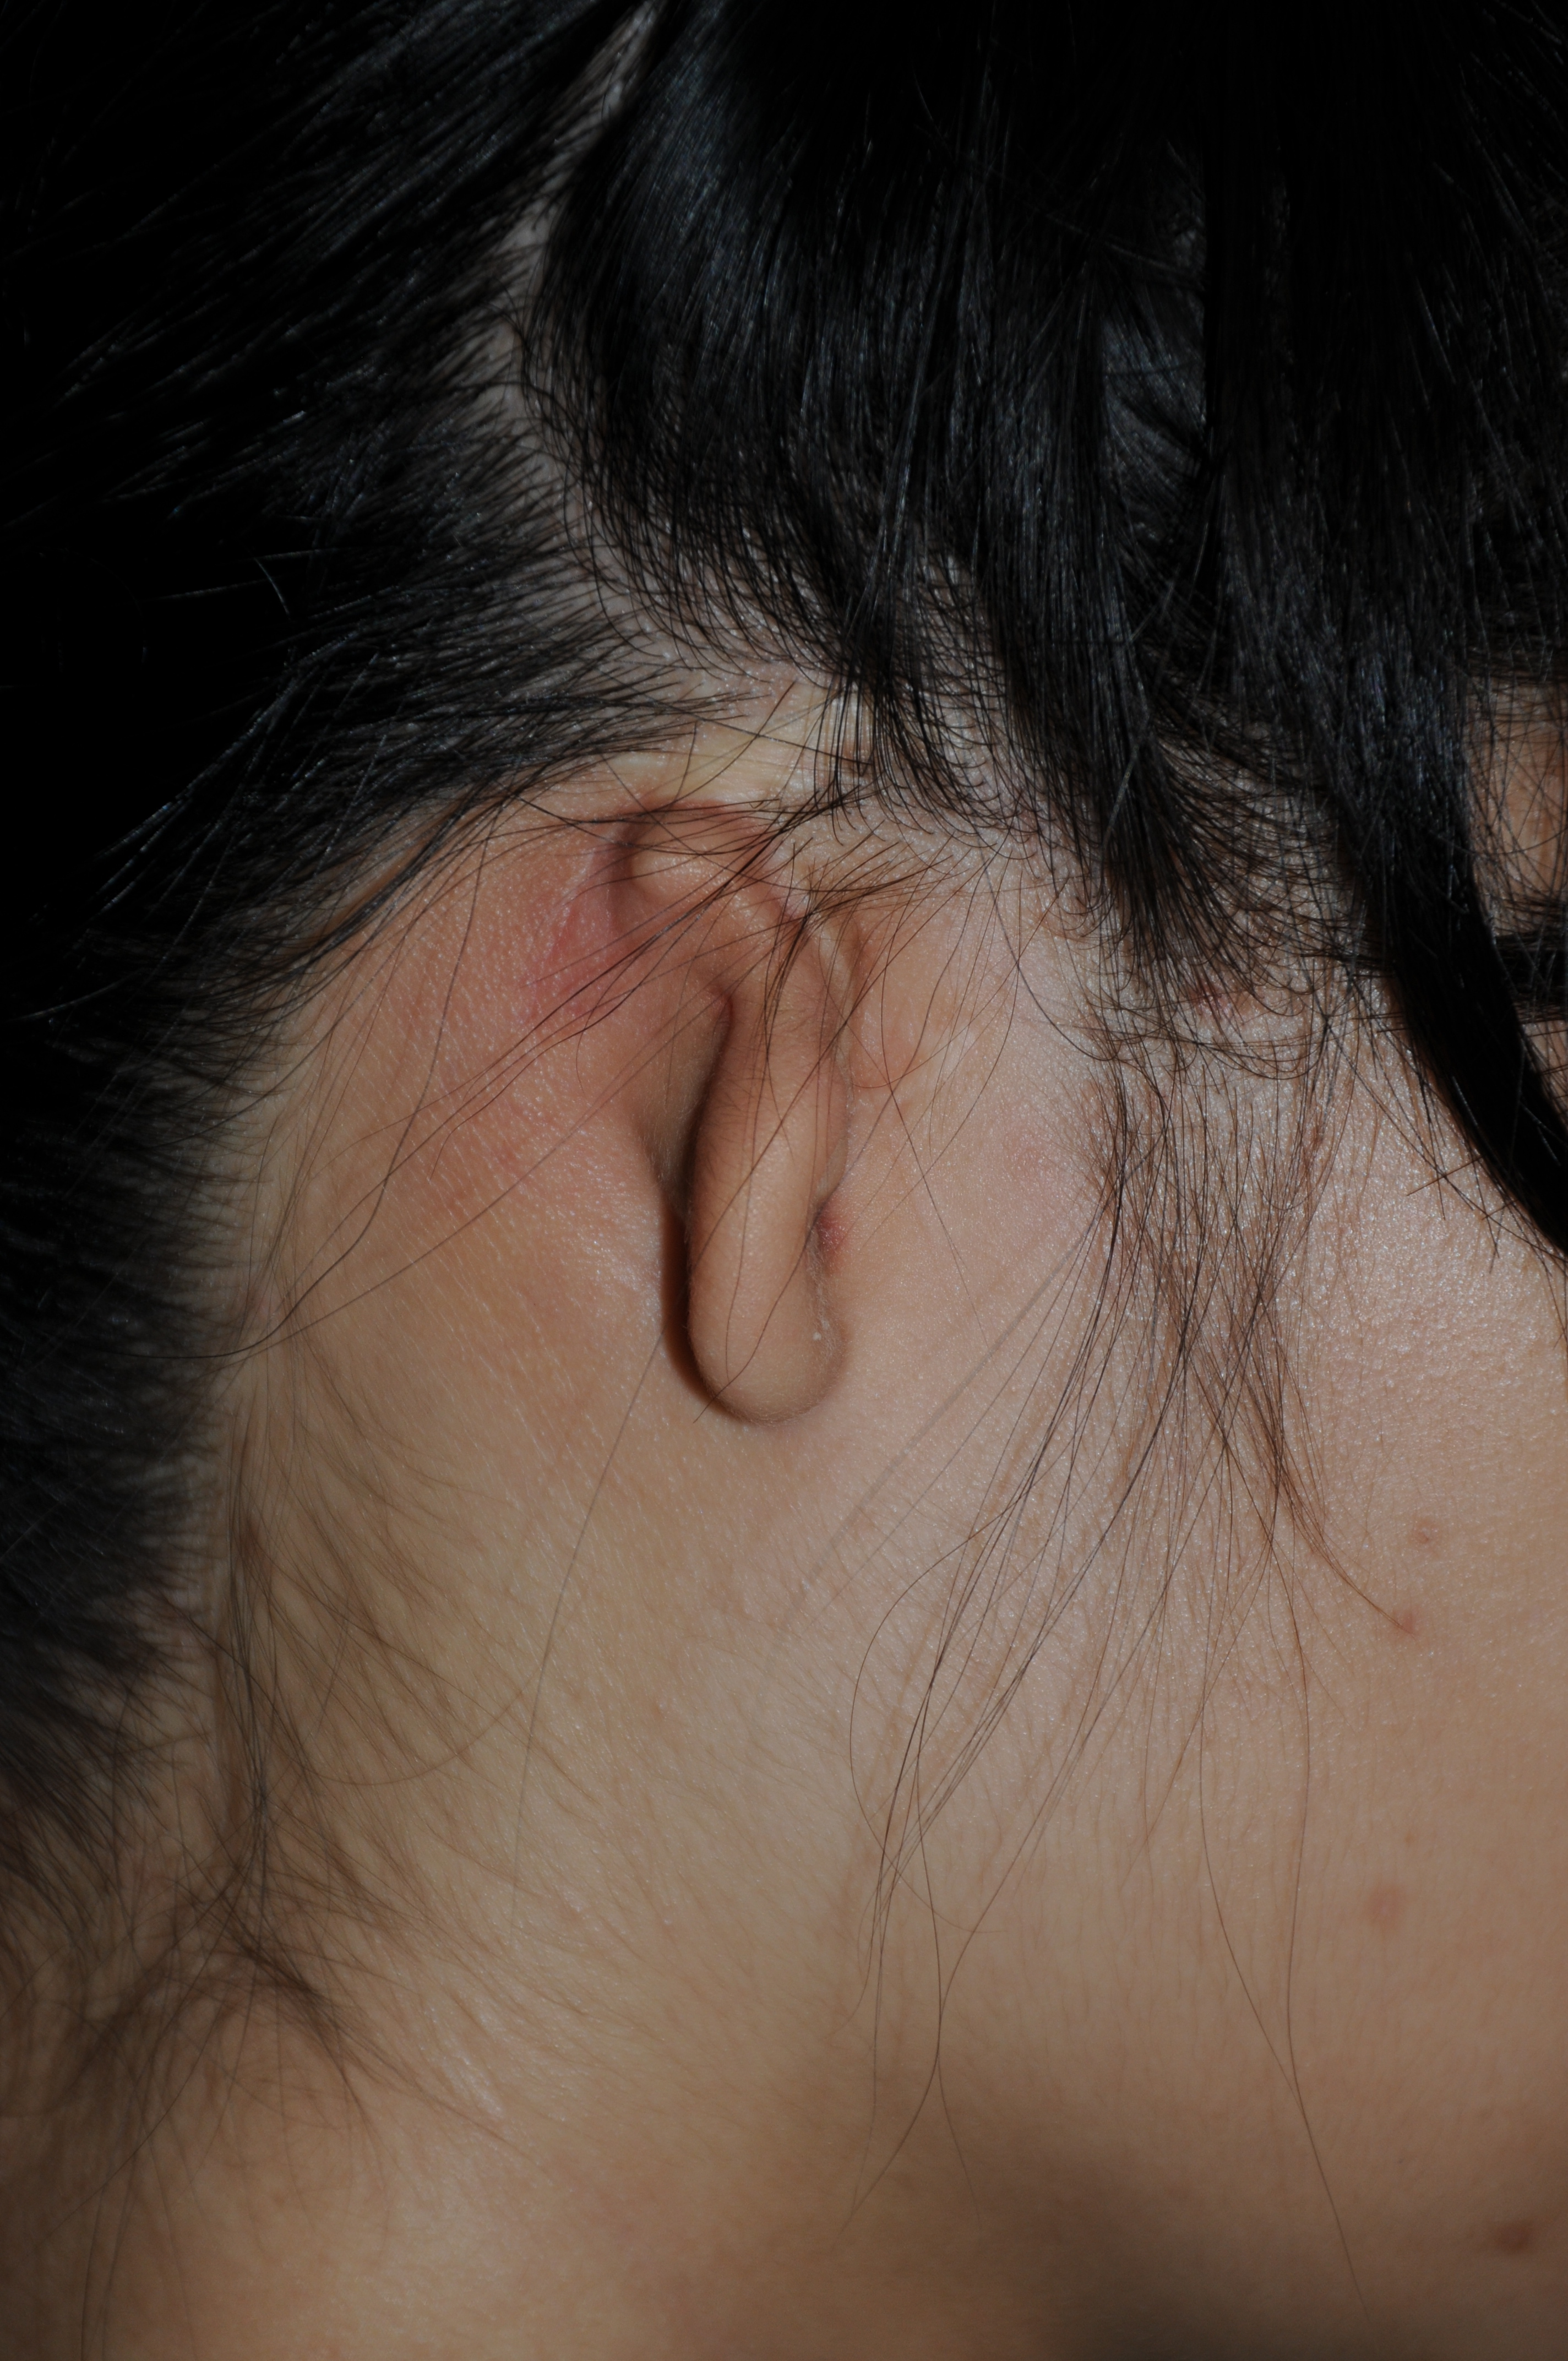 Microtia Ear Congenital deformity Dr. Philip Young Bellevue | Seattle